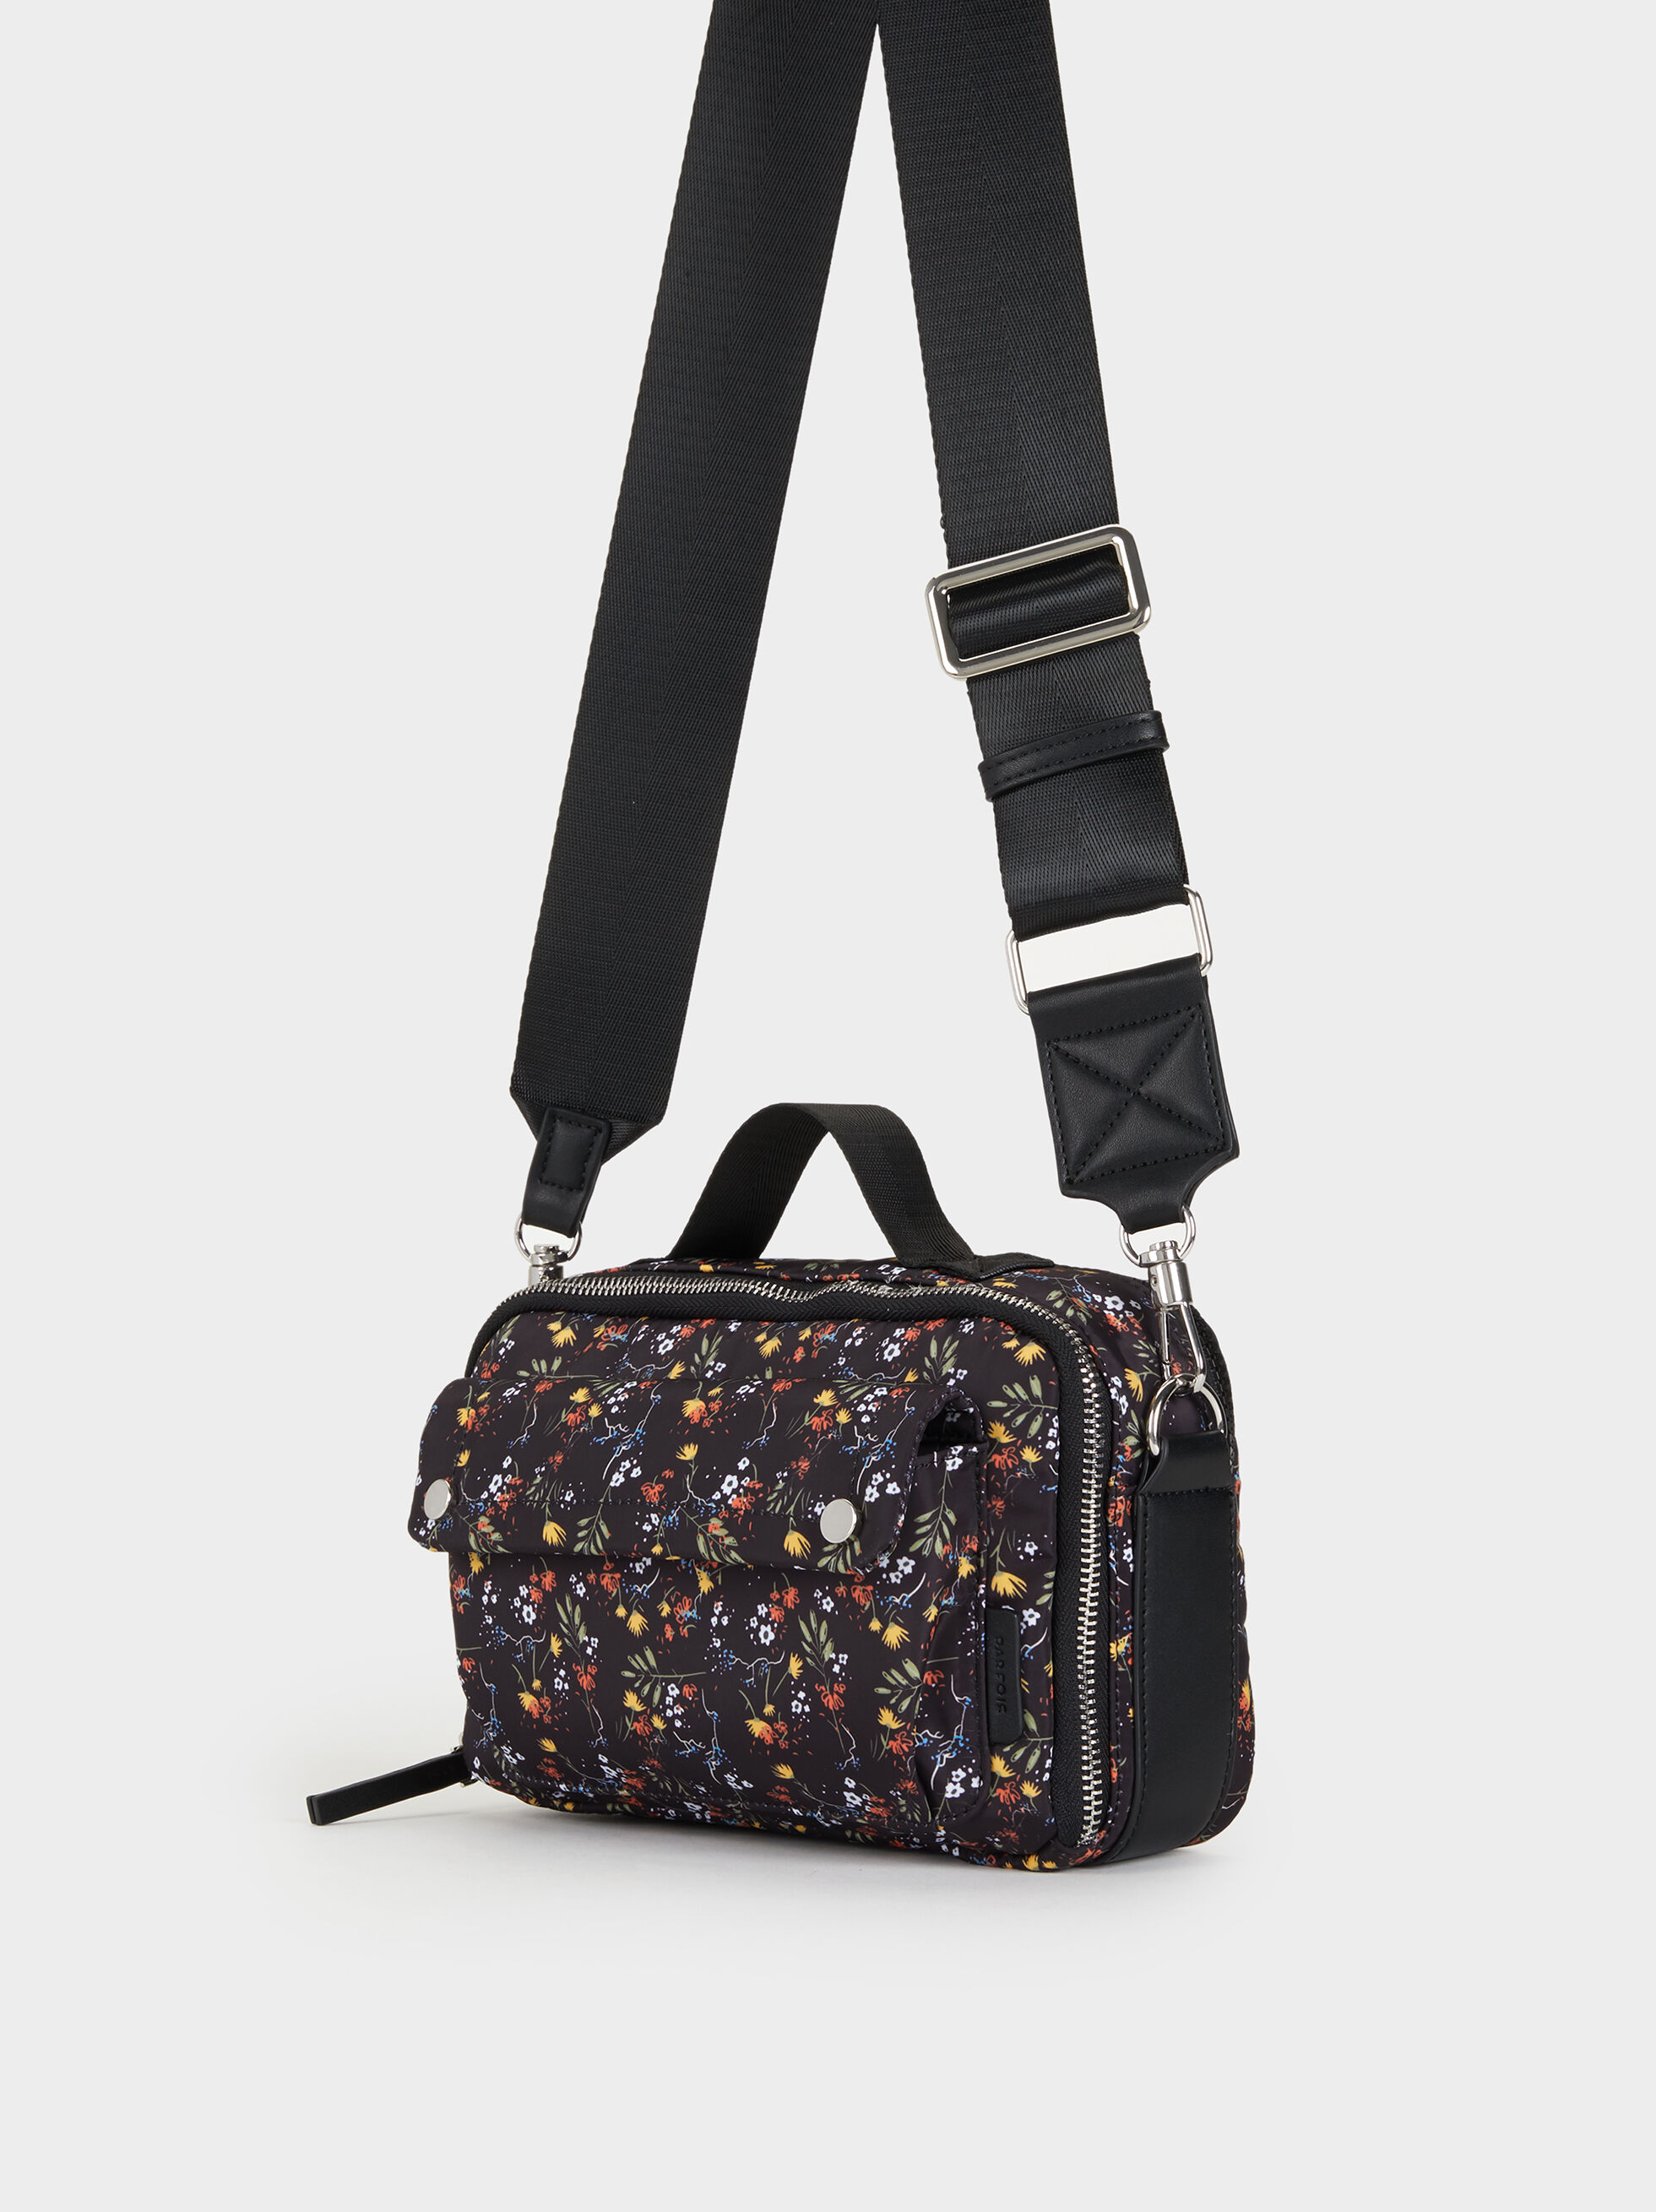 Floral Print Nylon Crossbody Bag, Black, hi-res